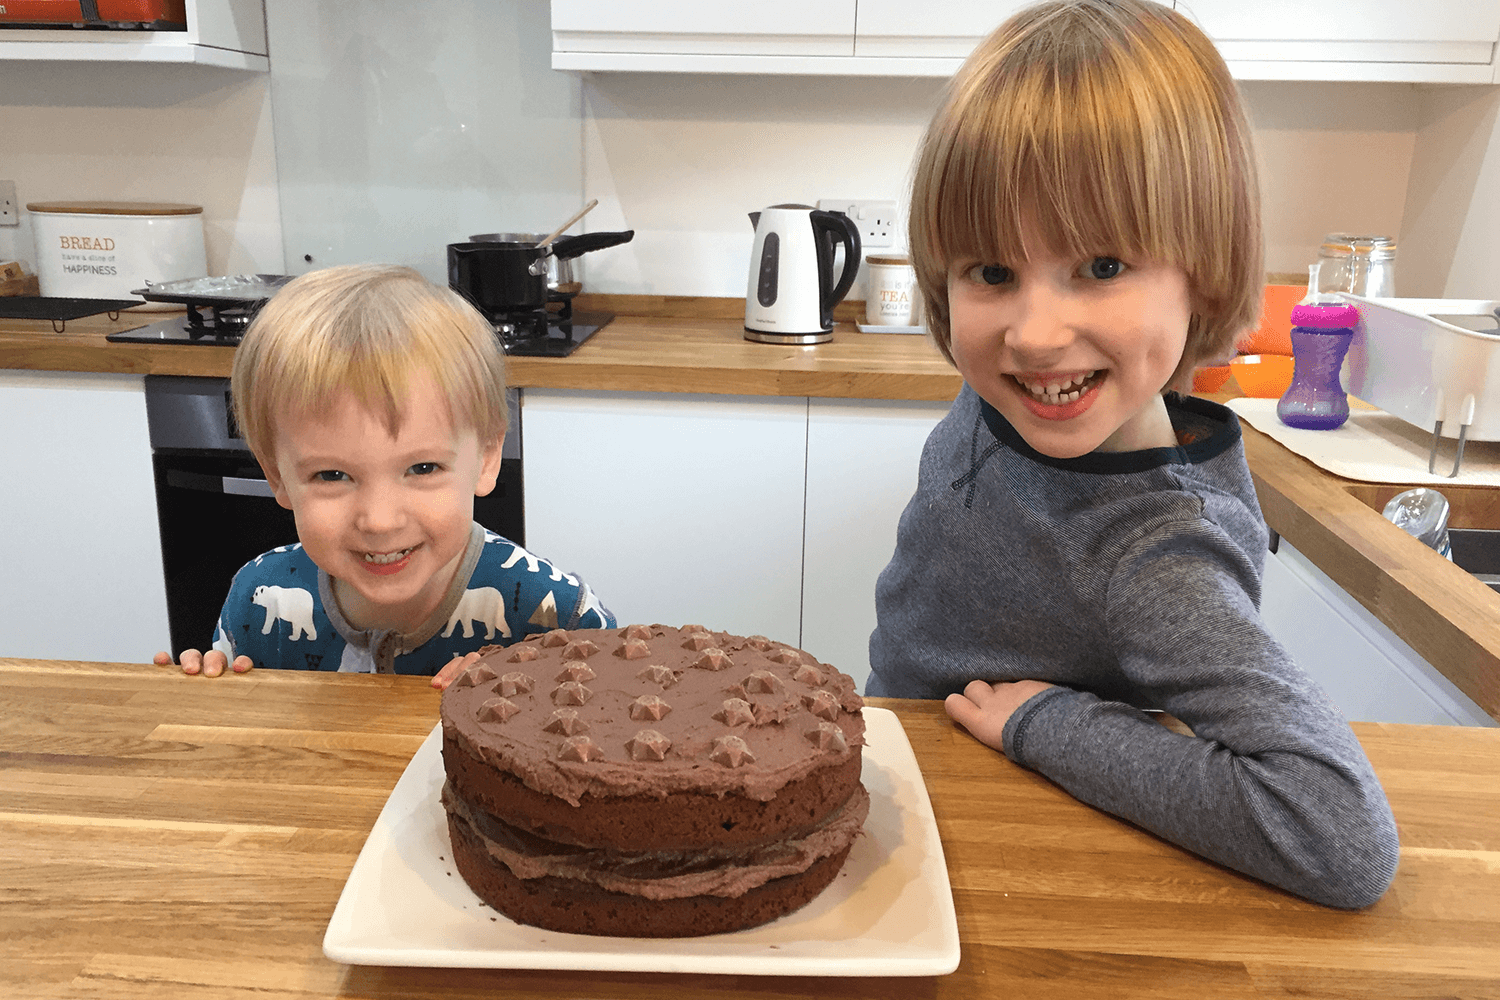 Toby and Gabe made a birthday cake for Grandad